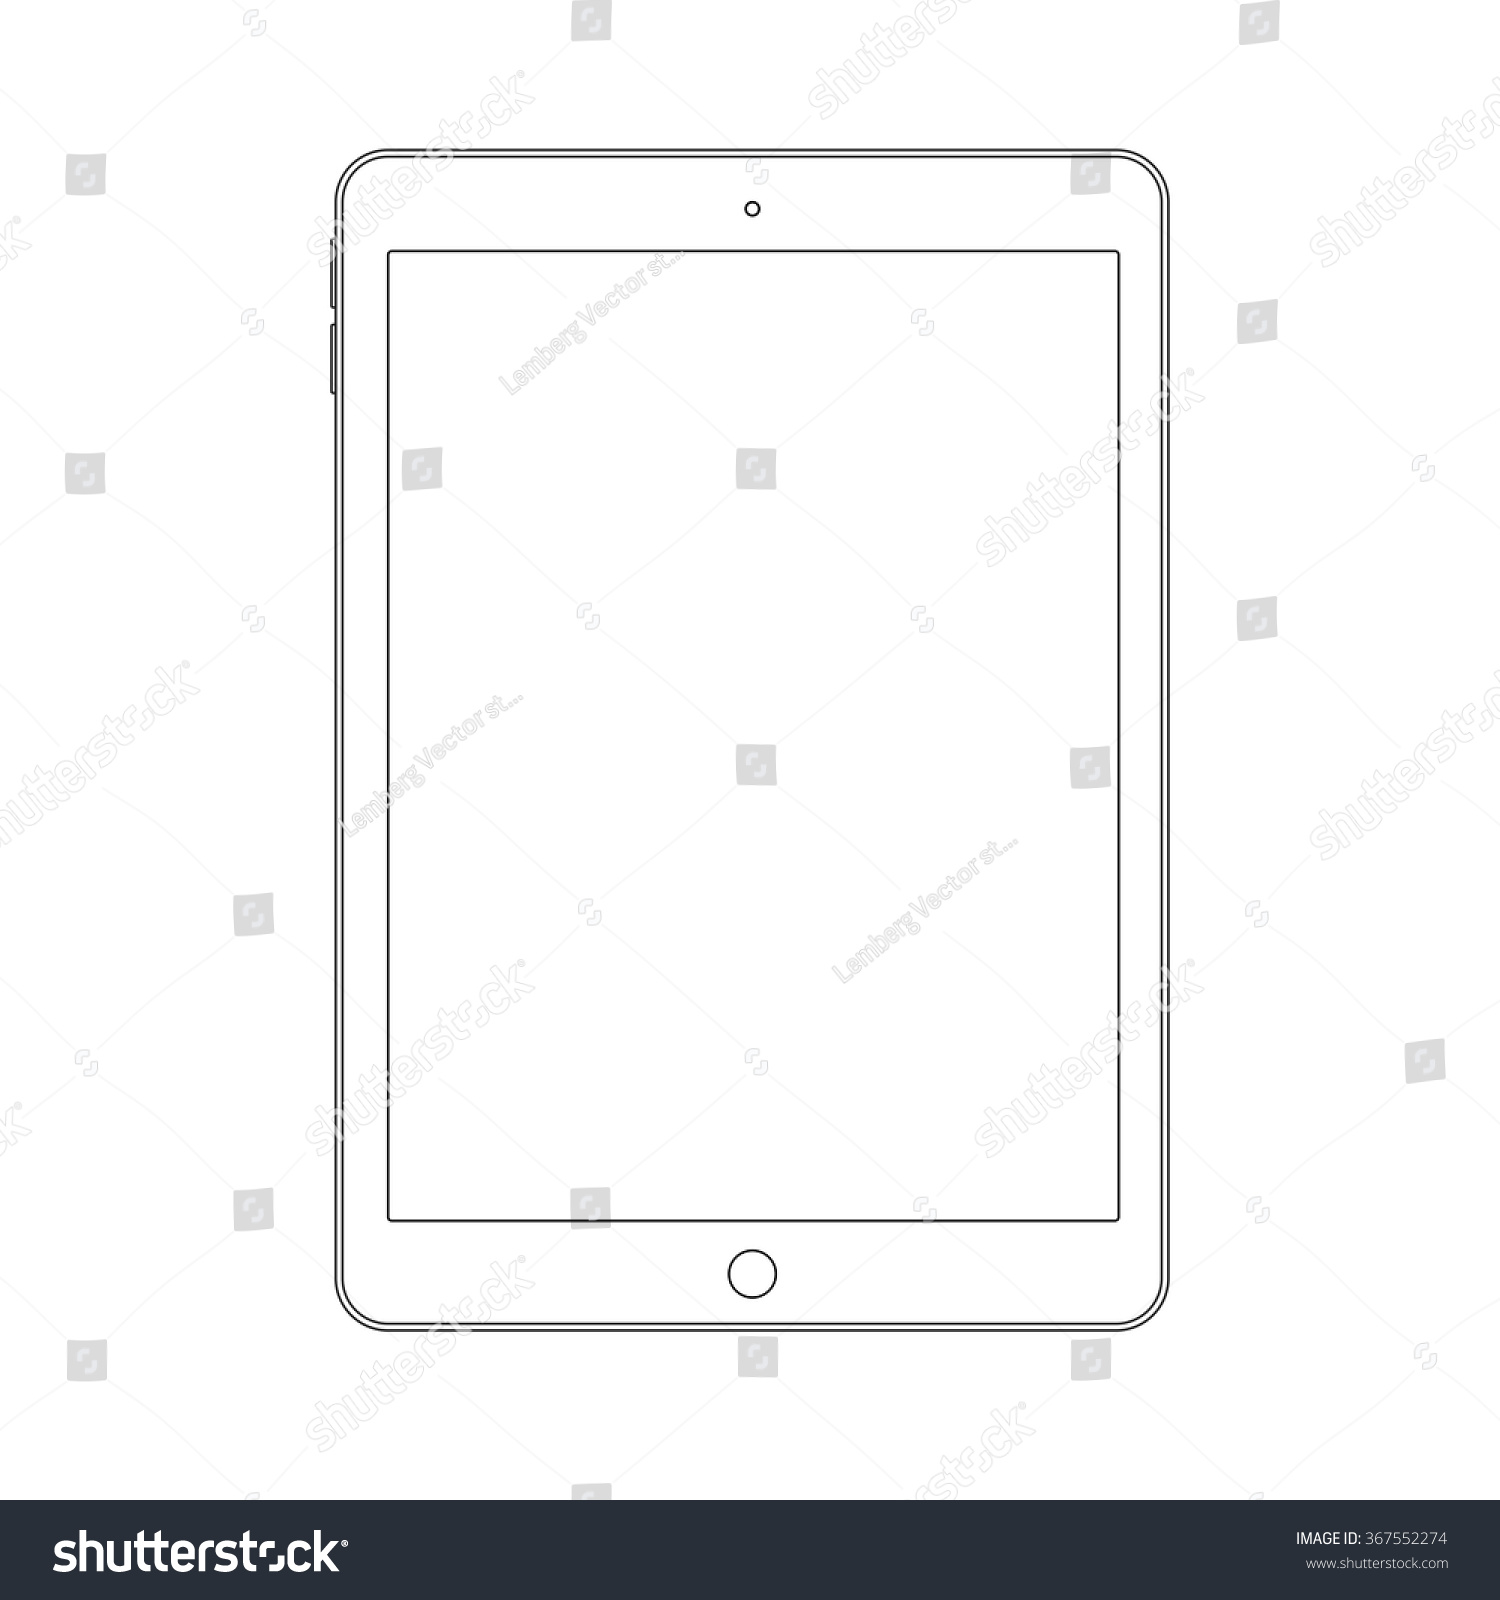 Drawing Smooth Lines In Photo With Tablet : Outline drawing tablet similar ipad air stock vector